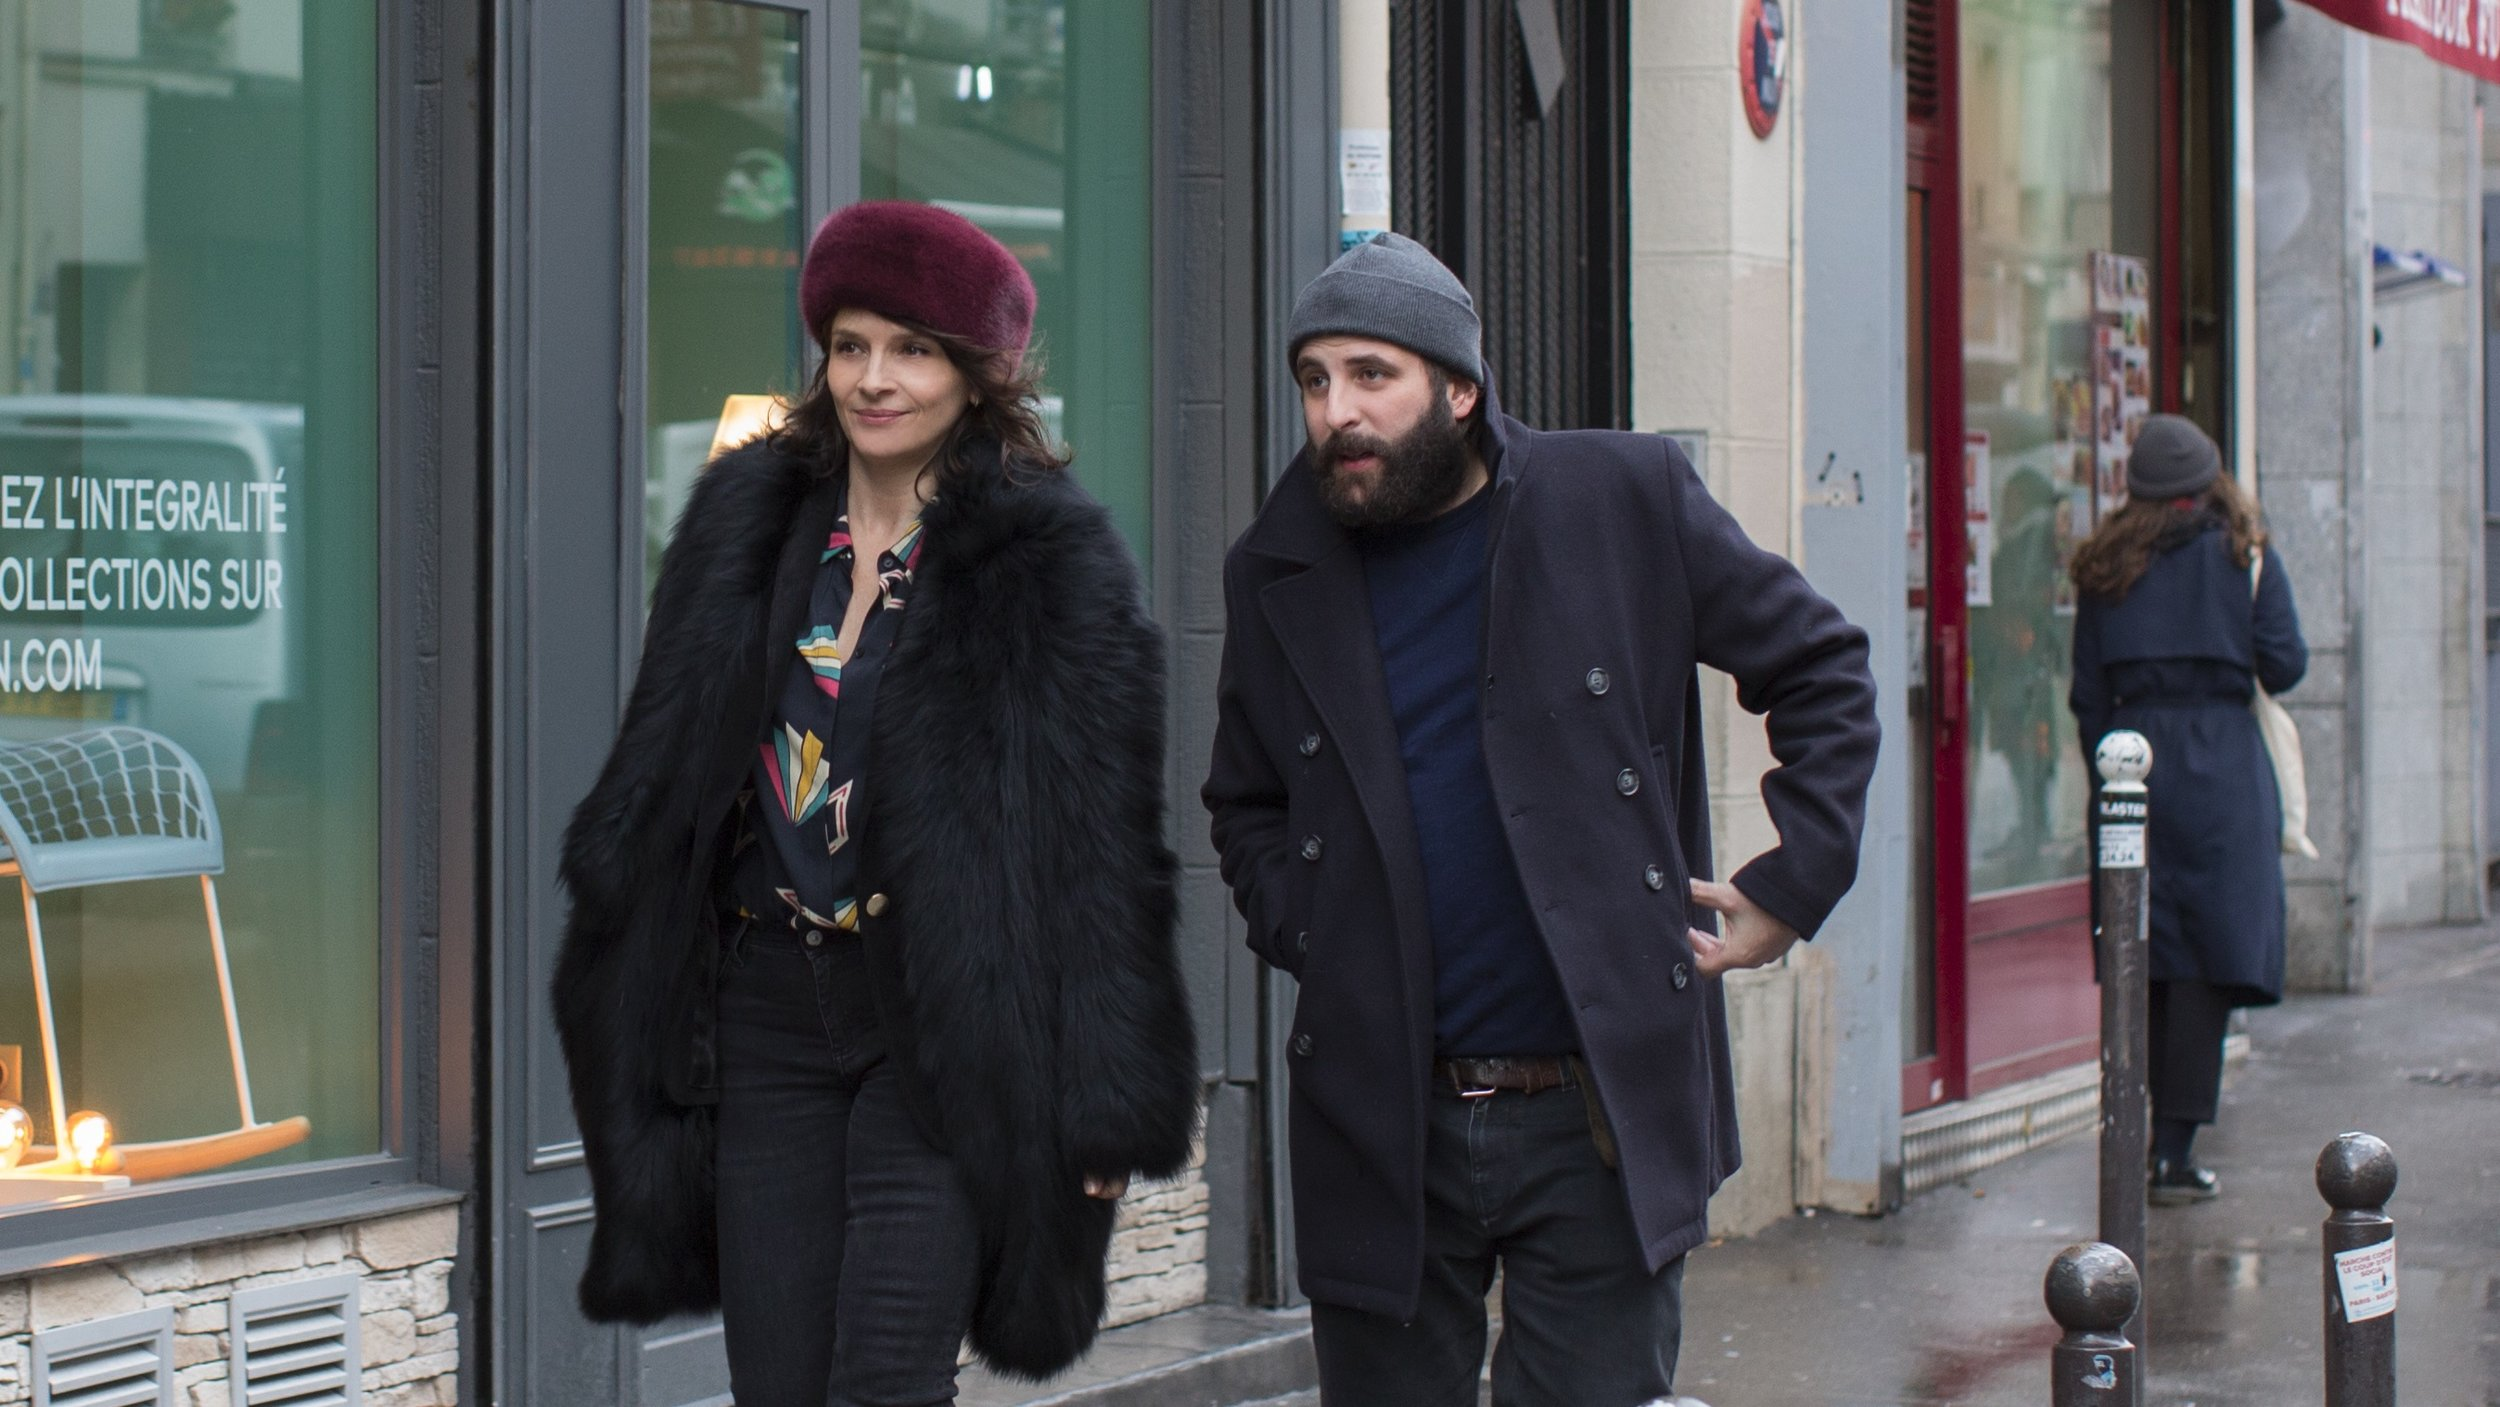 Juliette Binoche as Selena and Vincent Macaigne as Léonard Spiegel.